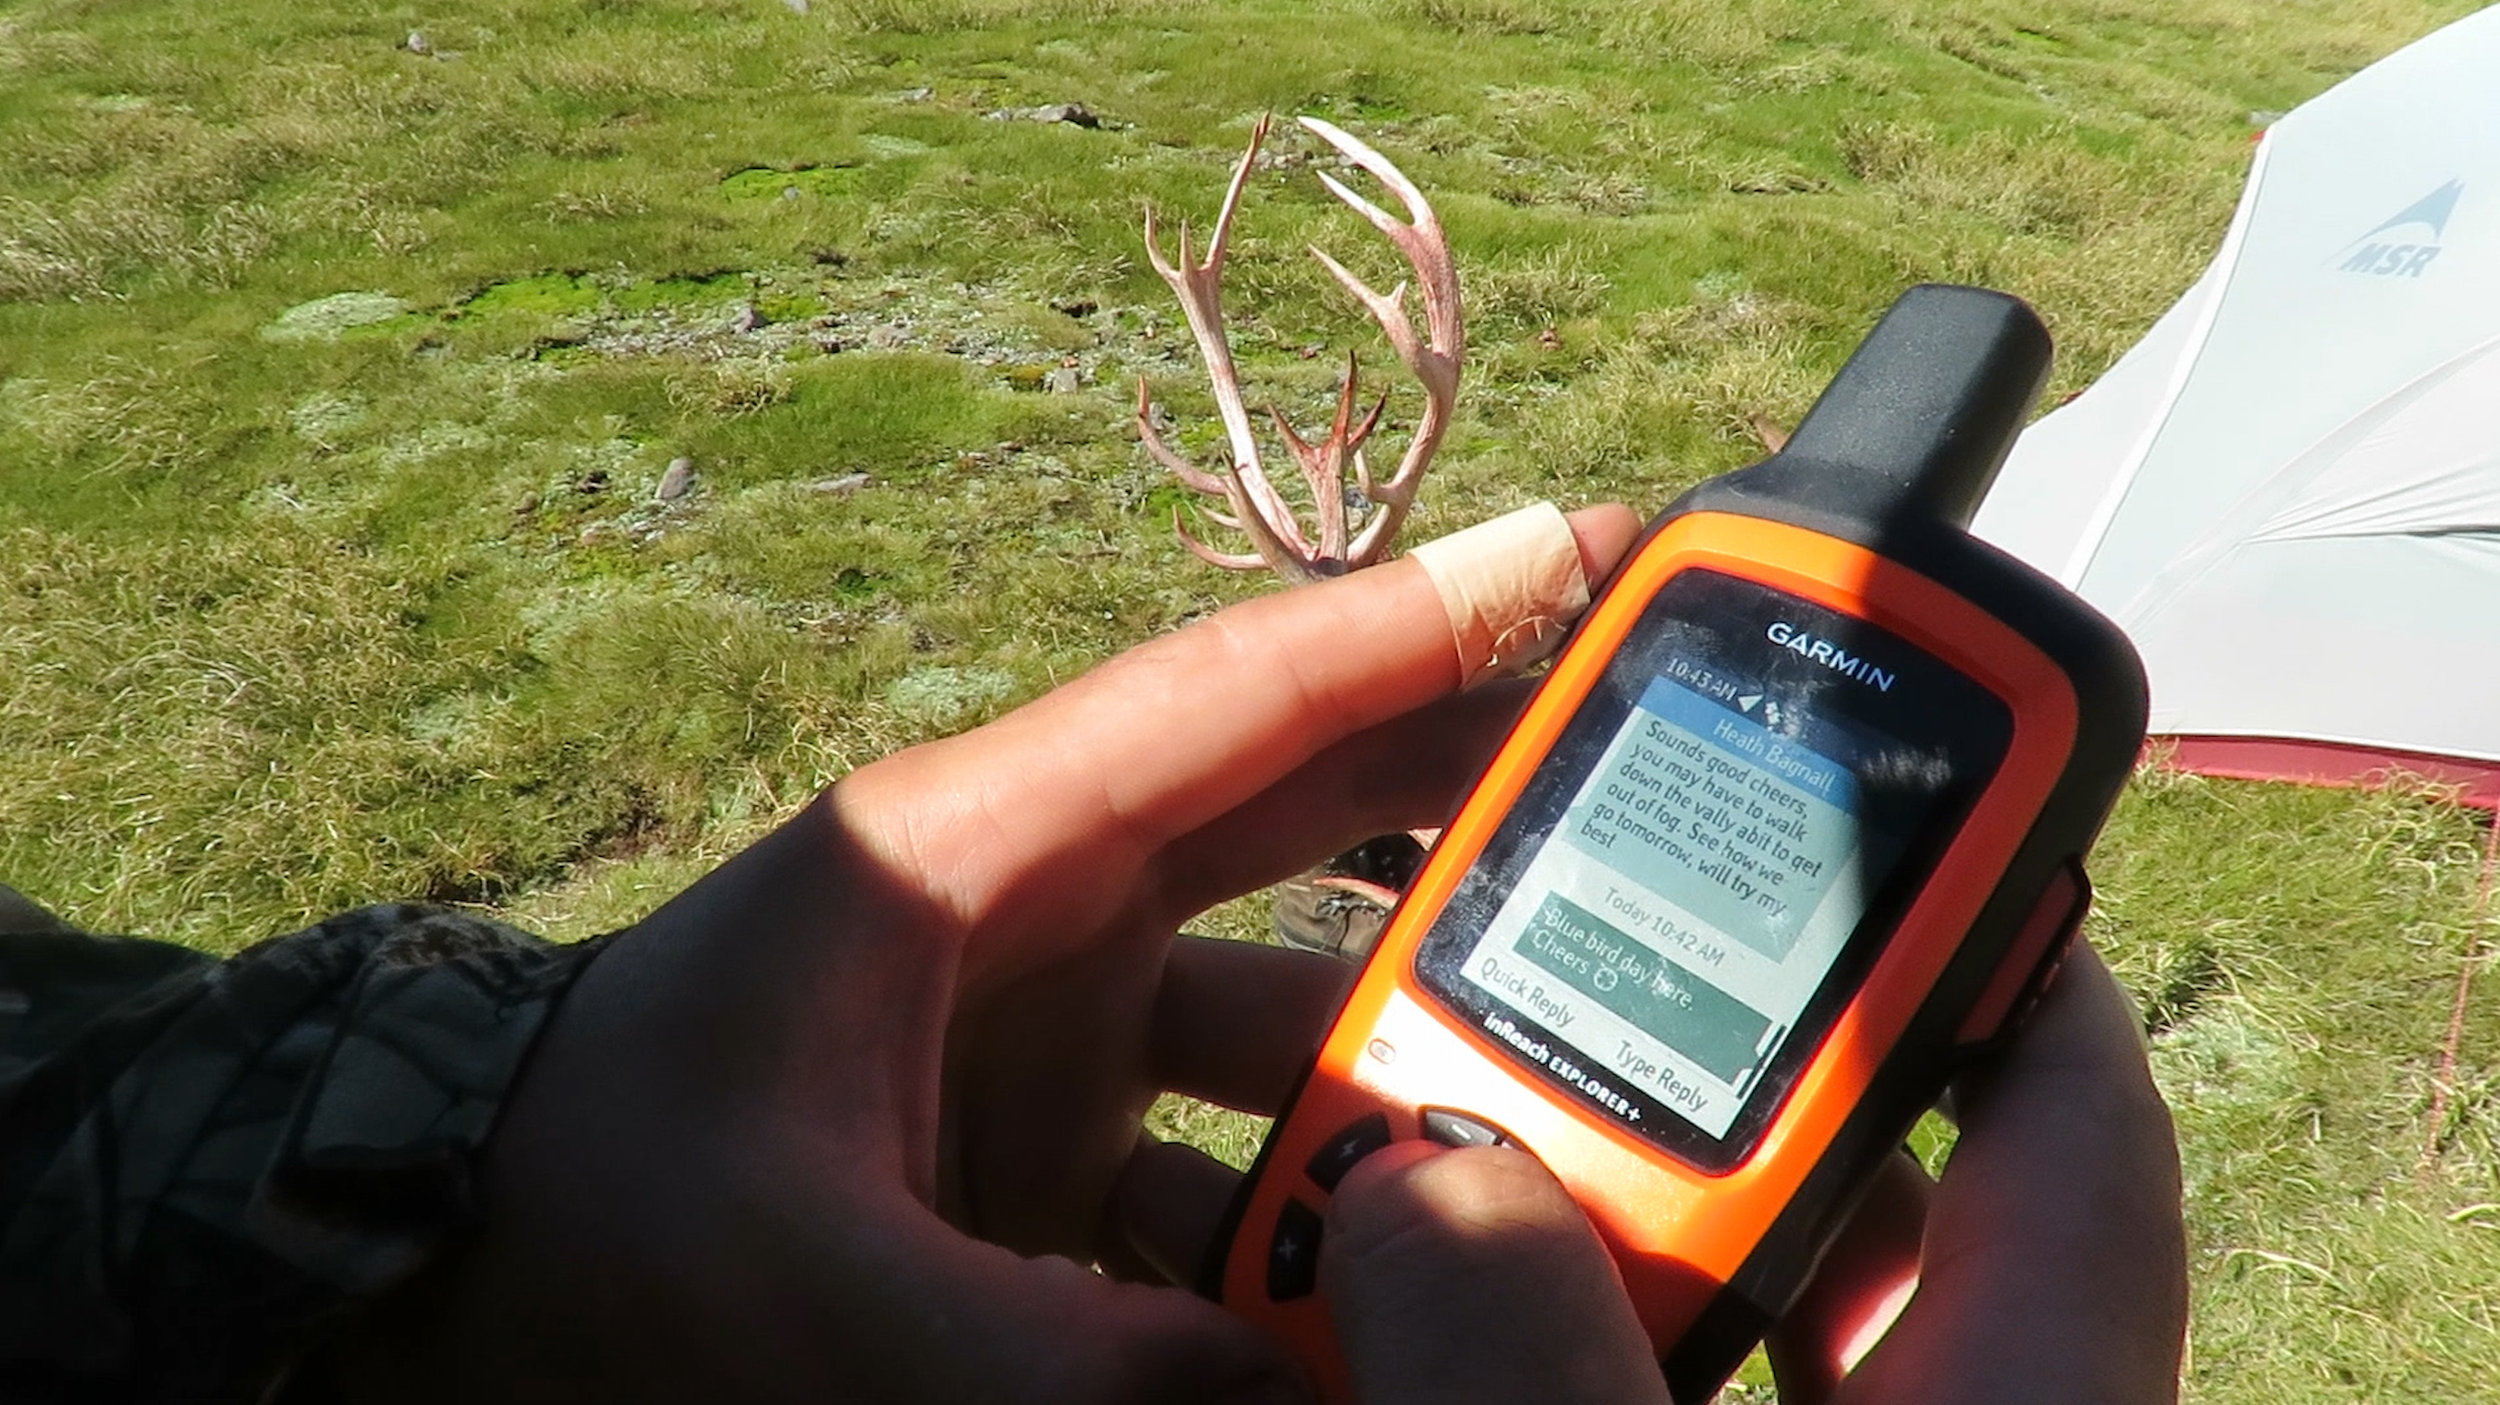 The  Garmin InReach  allowed us to text the heli-pilot for an early pickup at a random location